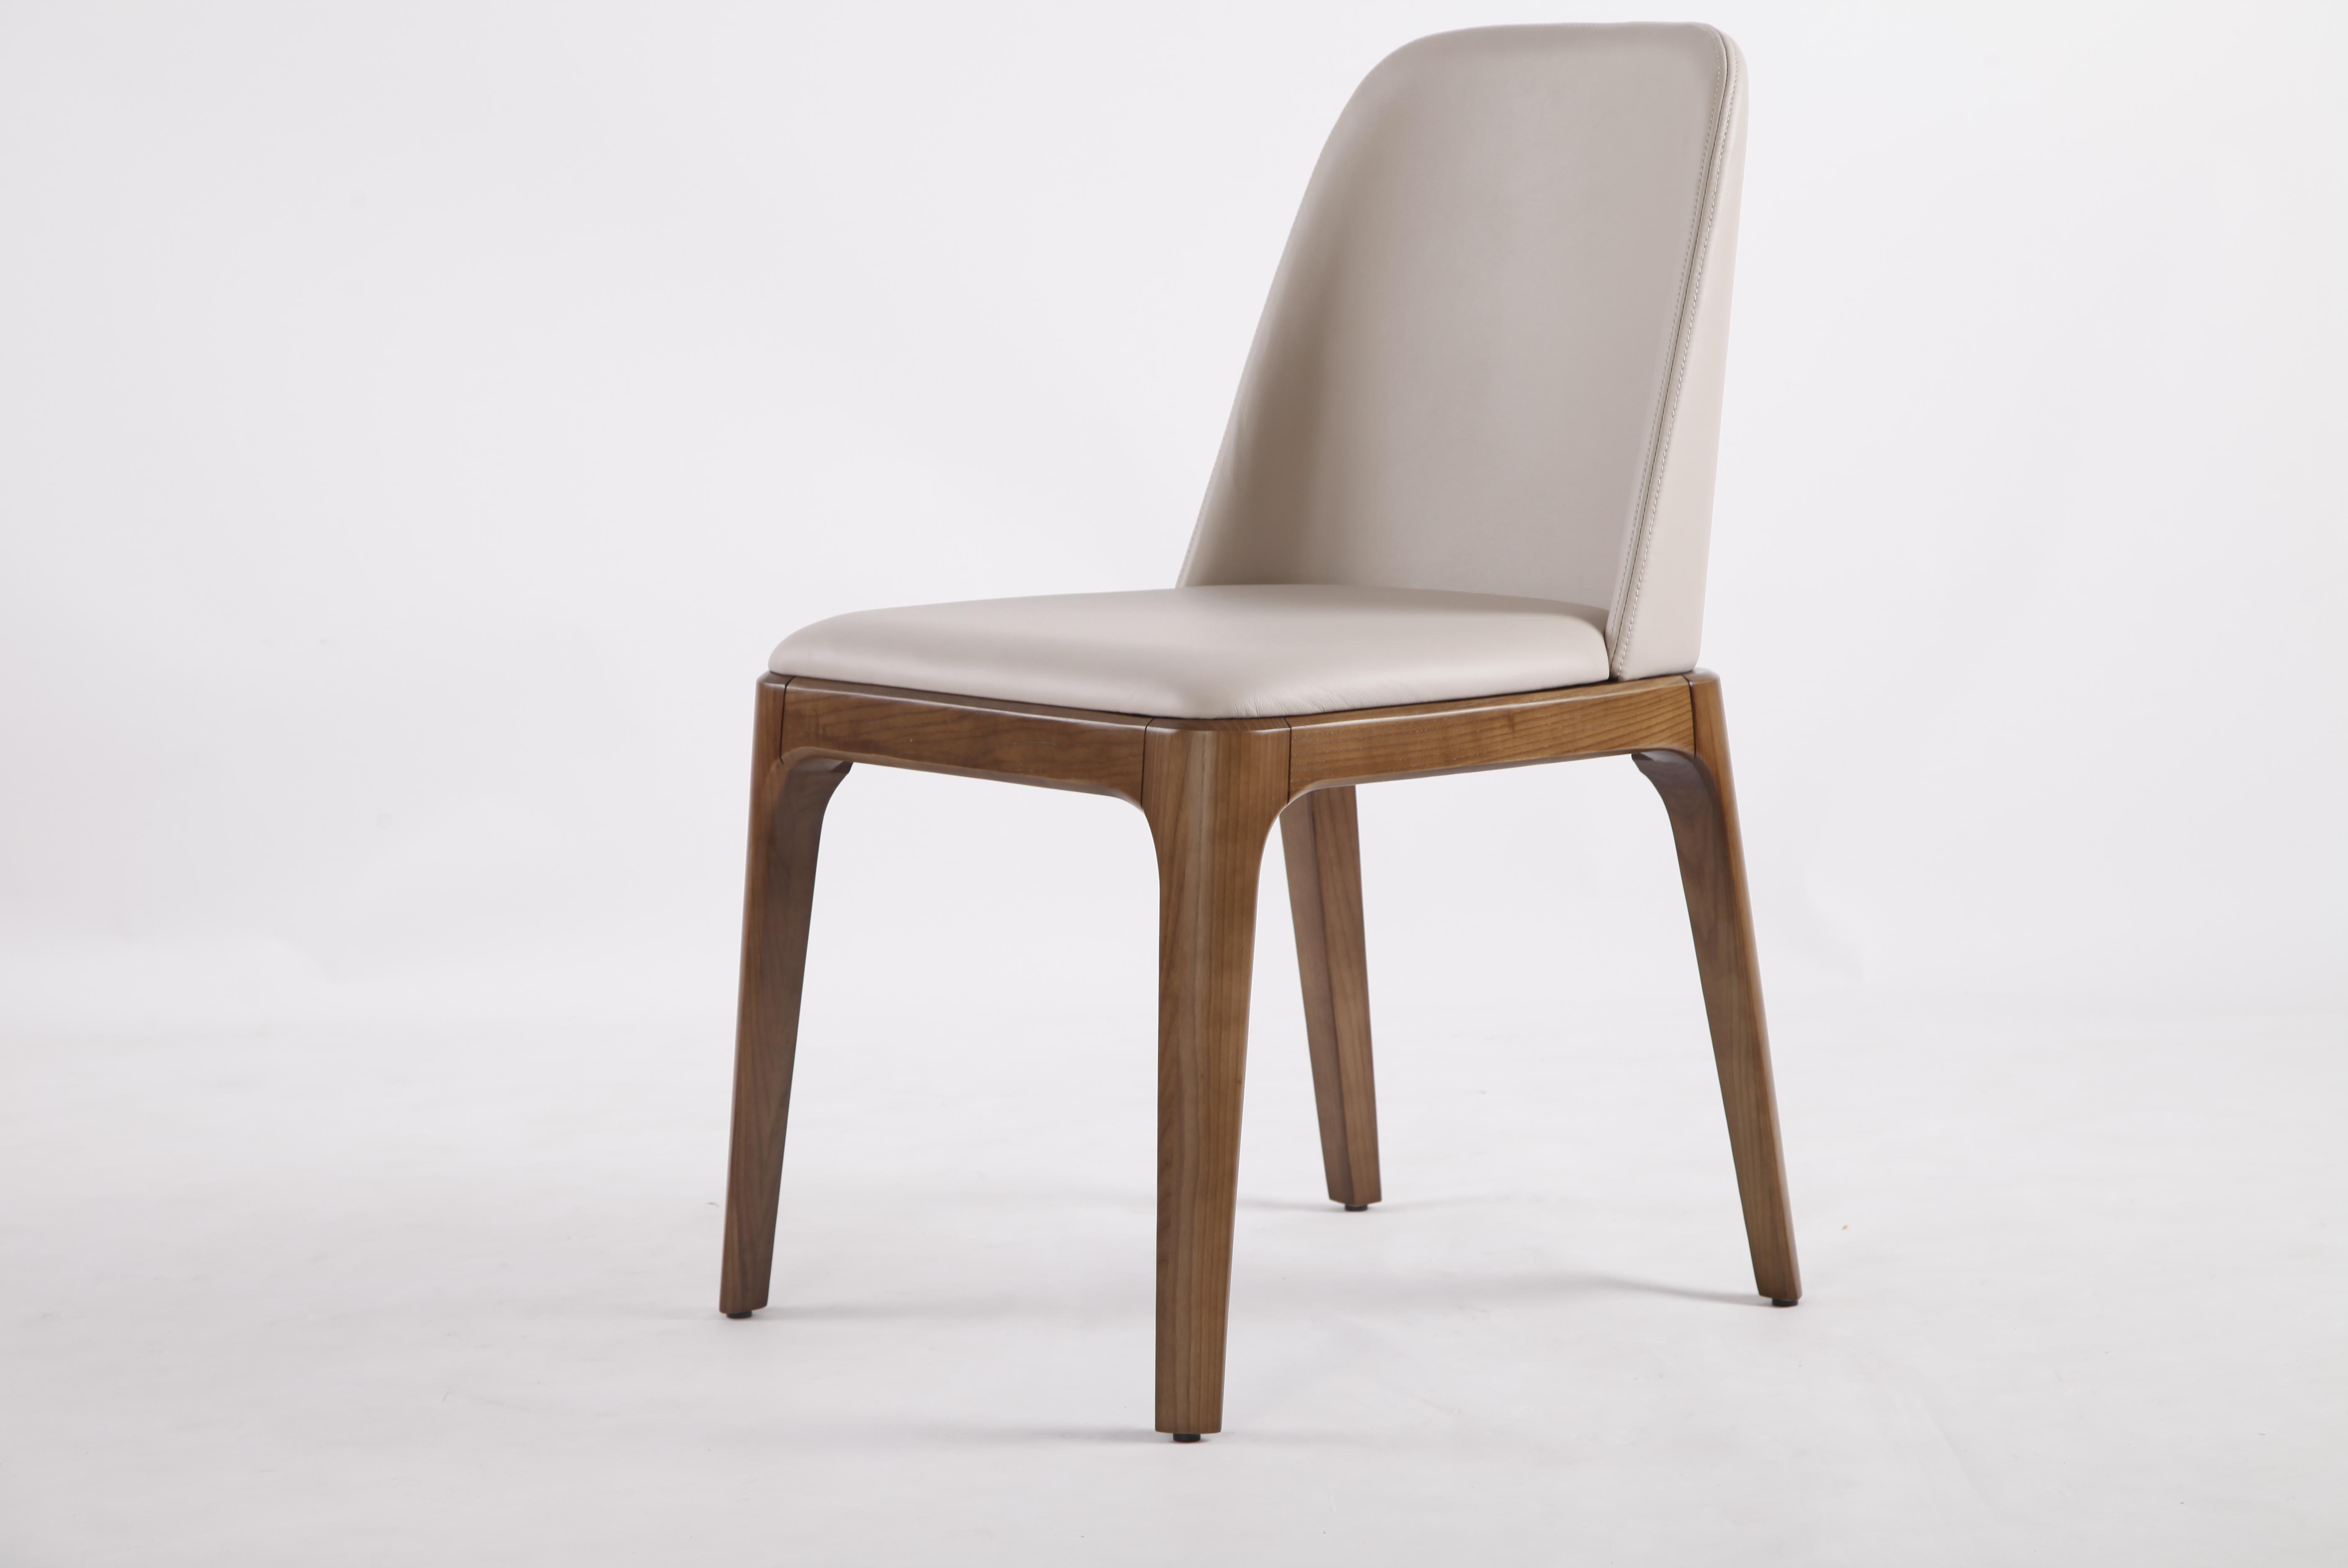 Poliform grace dining chair replica